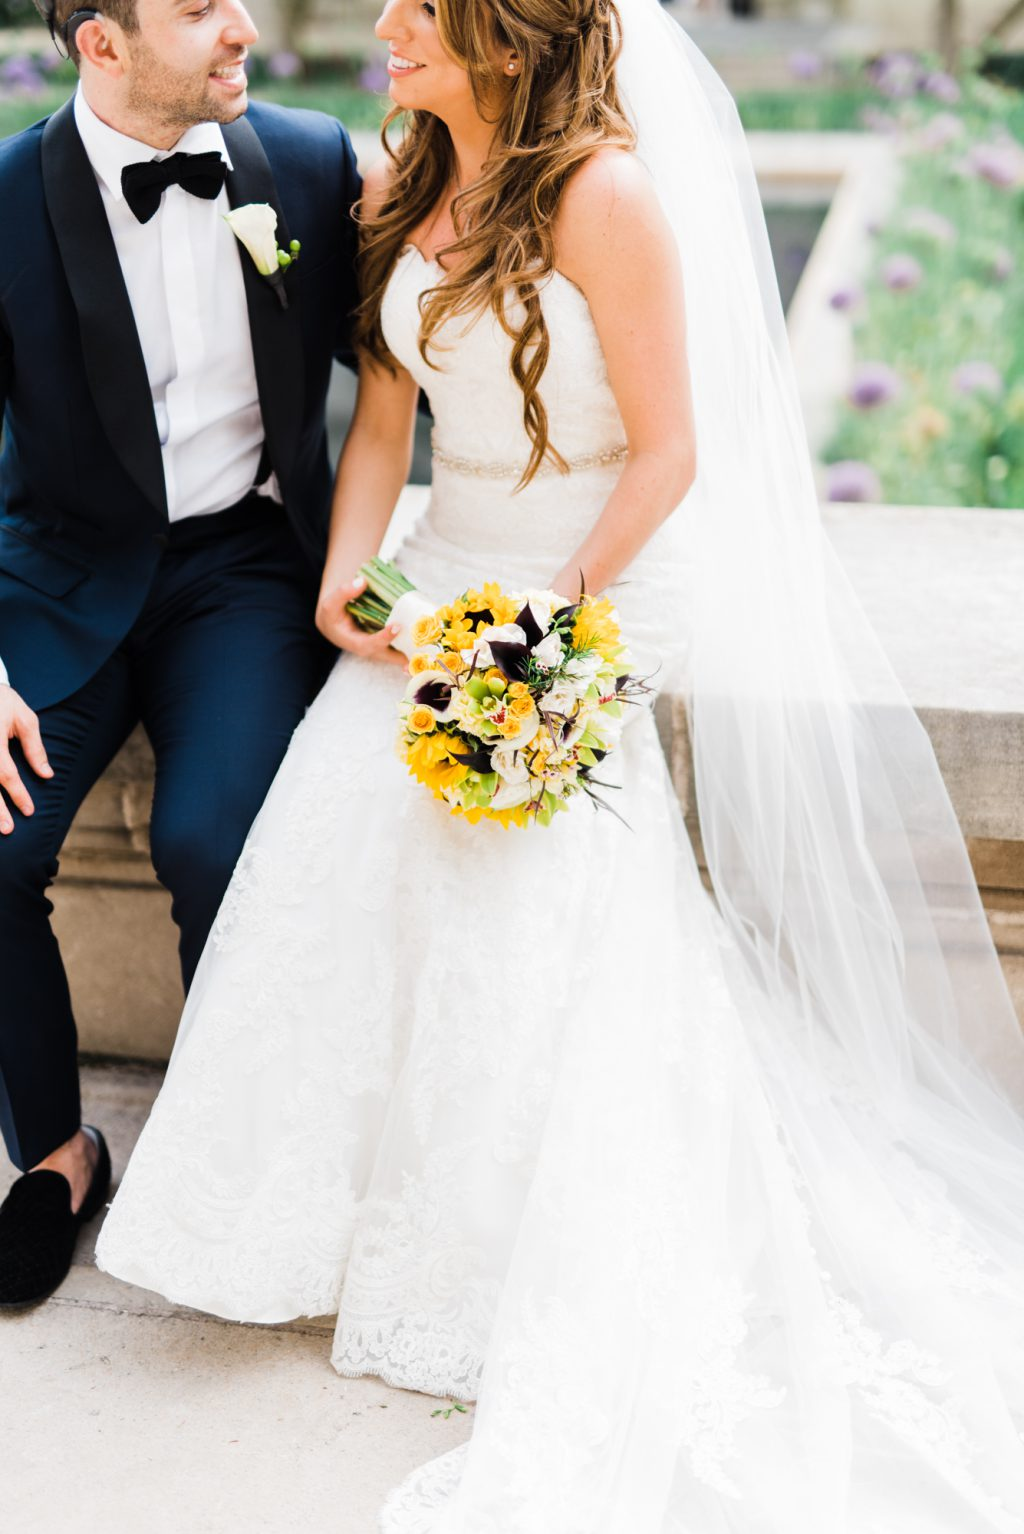 haleyrichterphoto-front-and-palmer-spring-wedding-rodin-museum-loews-hotel-philadelphia-091